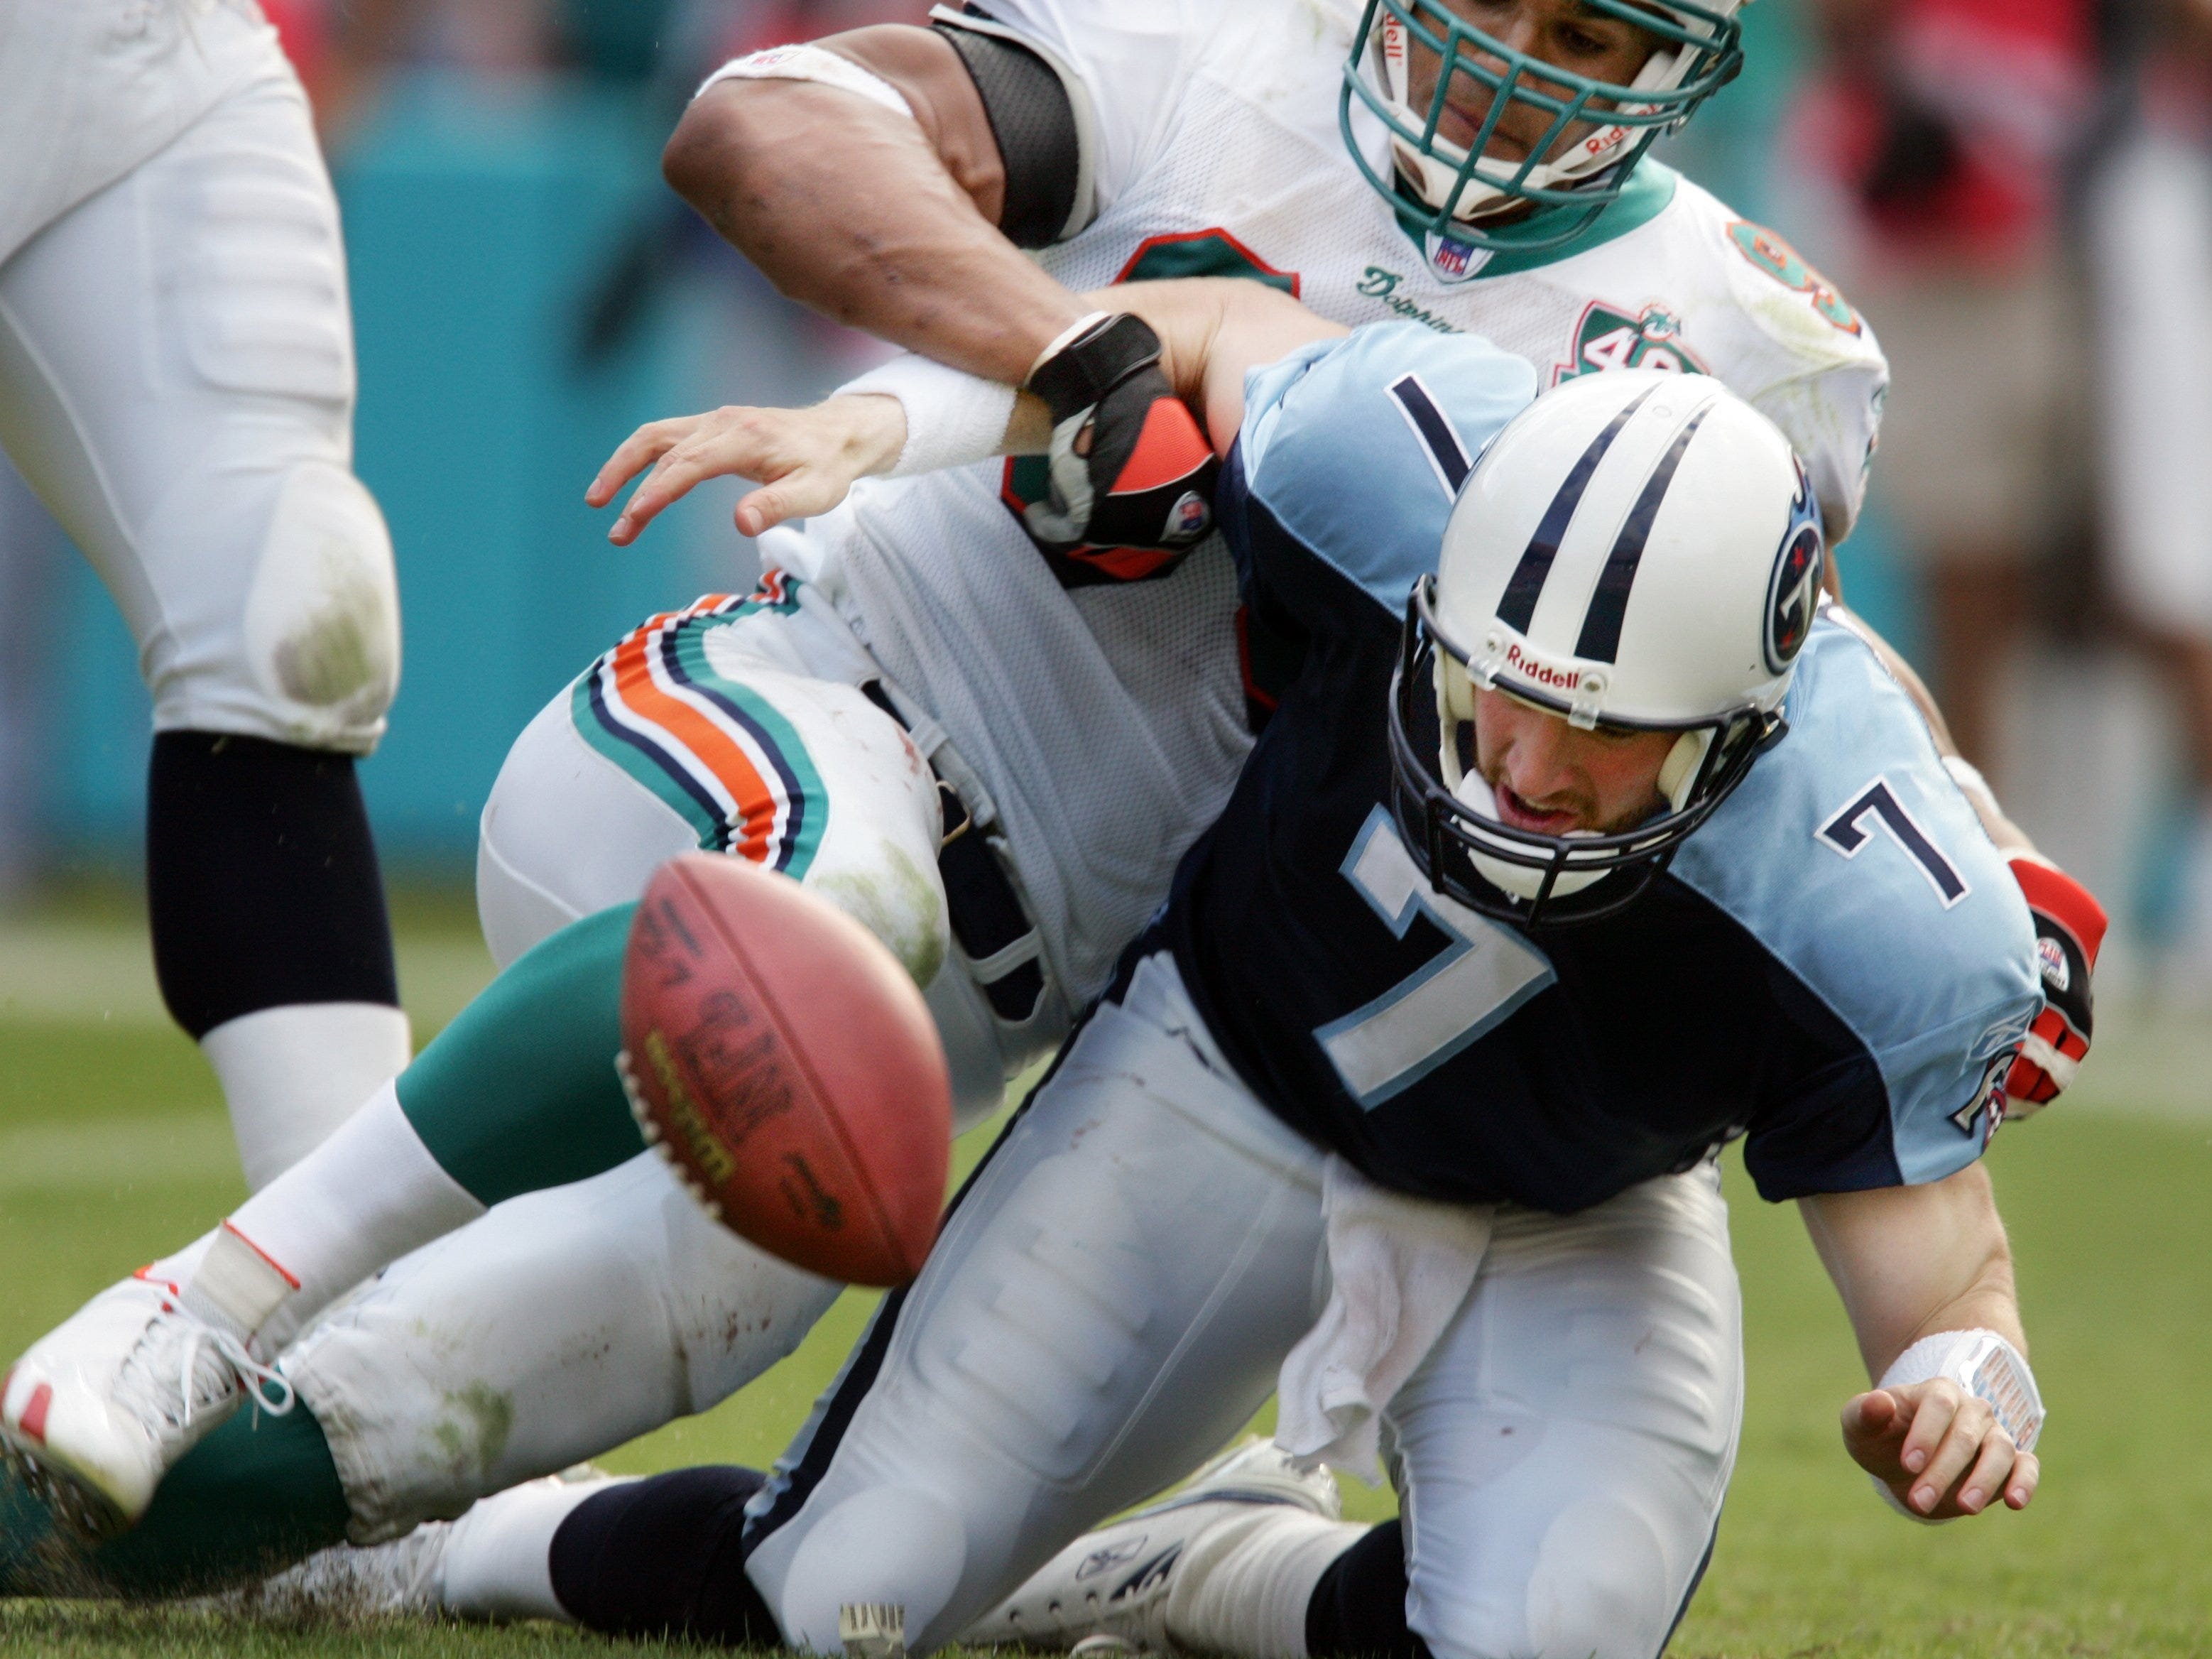 Billy Volek -- 10 games started as a Titans quarterback since 1981  Here, Dolphins defensive end Jason Taylor (99) strips the ball from Titans' quarterback Billy Volek (7) as as he is sacked in the fourth quarter during their game at Dolphins Stadium in Miami Gardens, Fla.December 24, 2005.